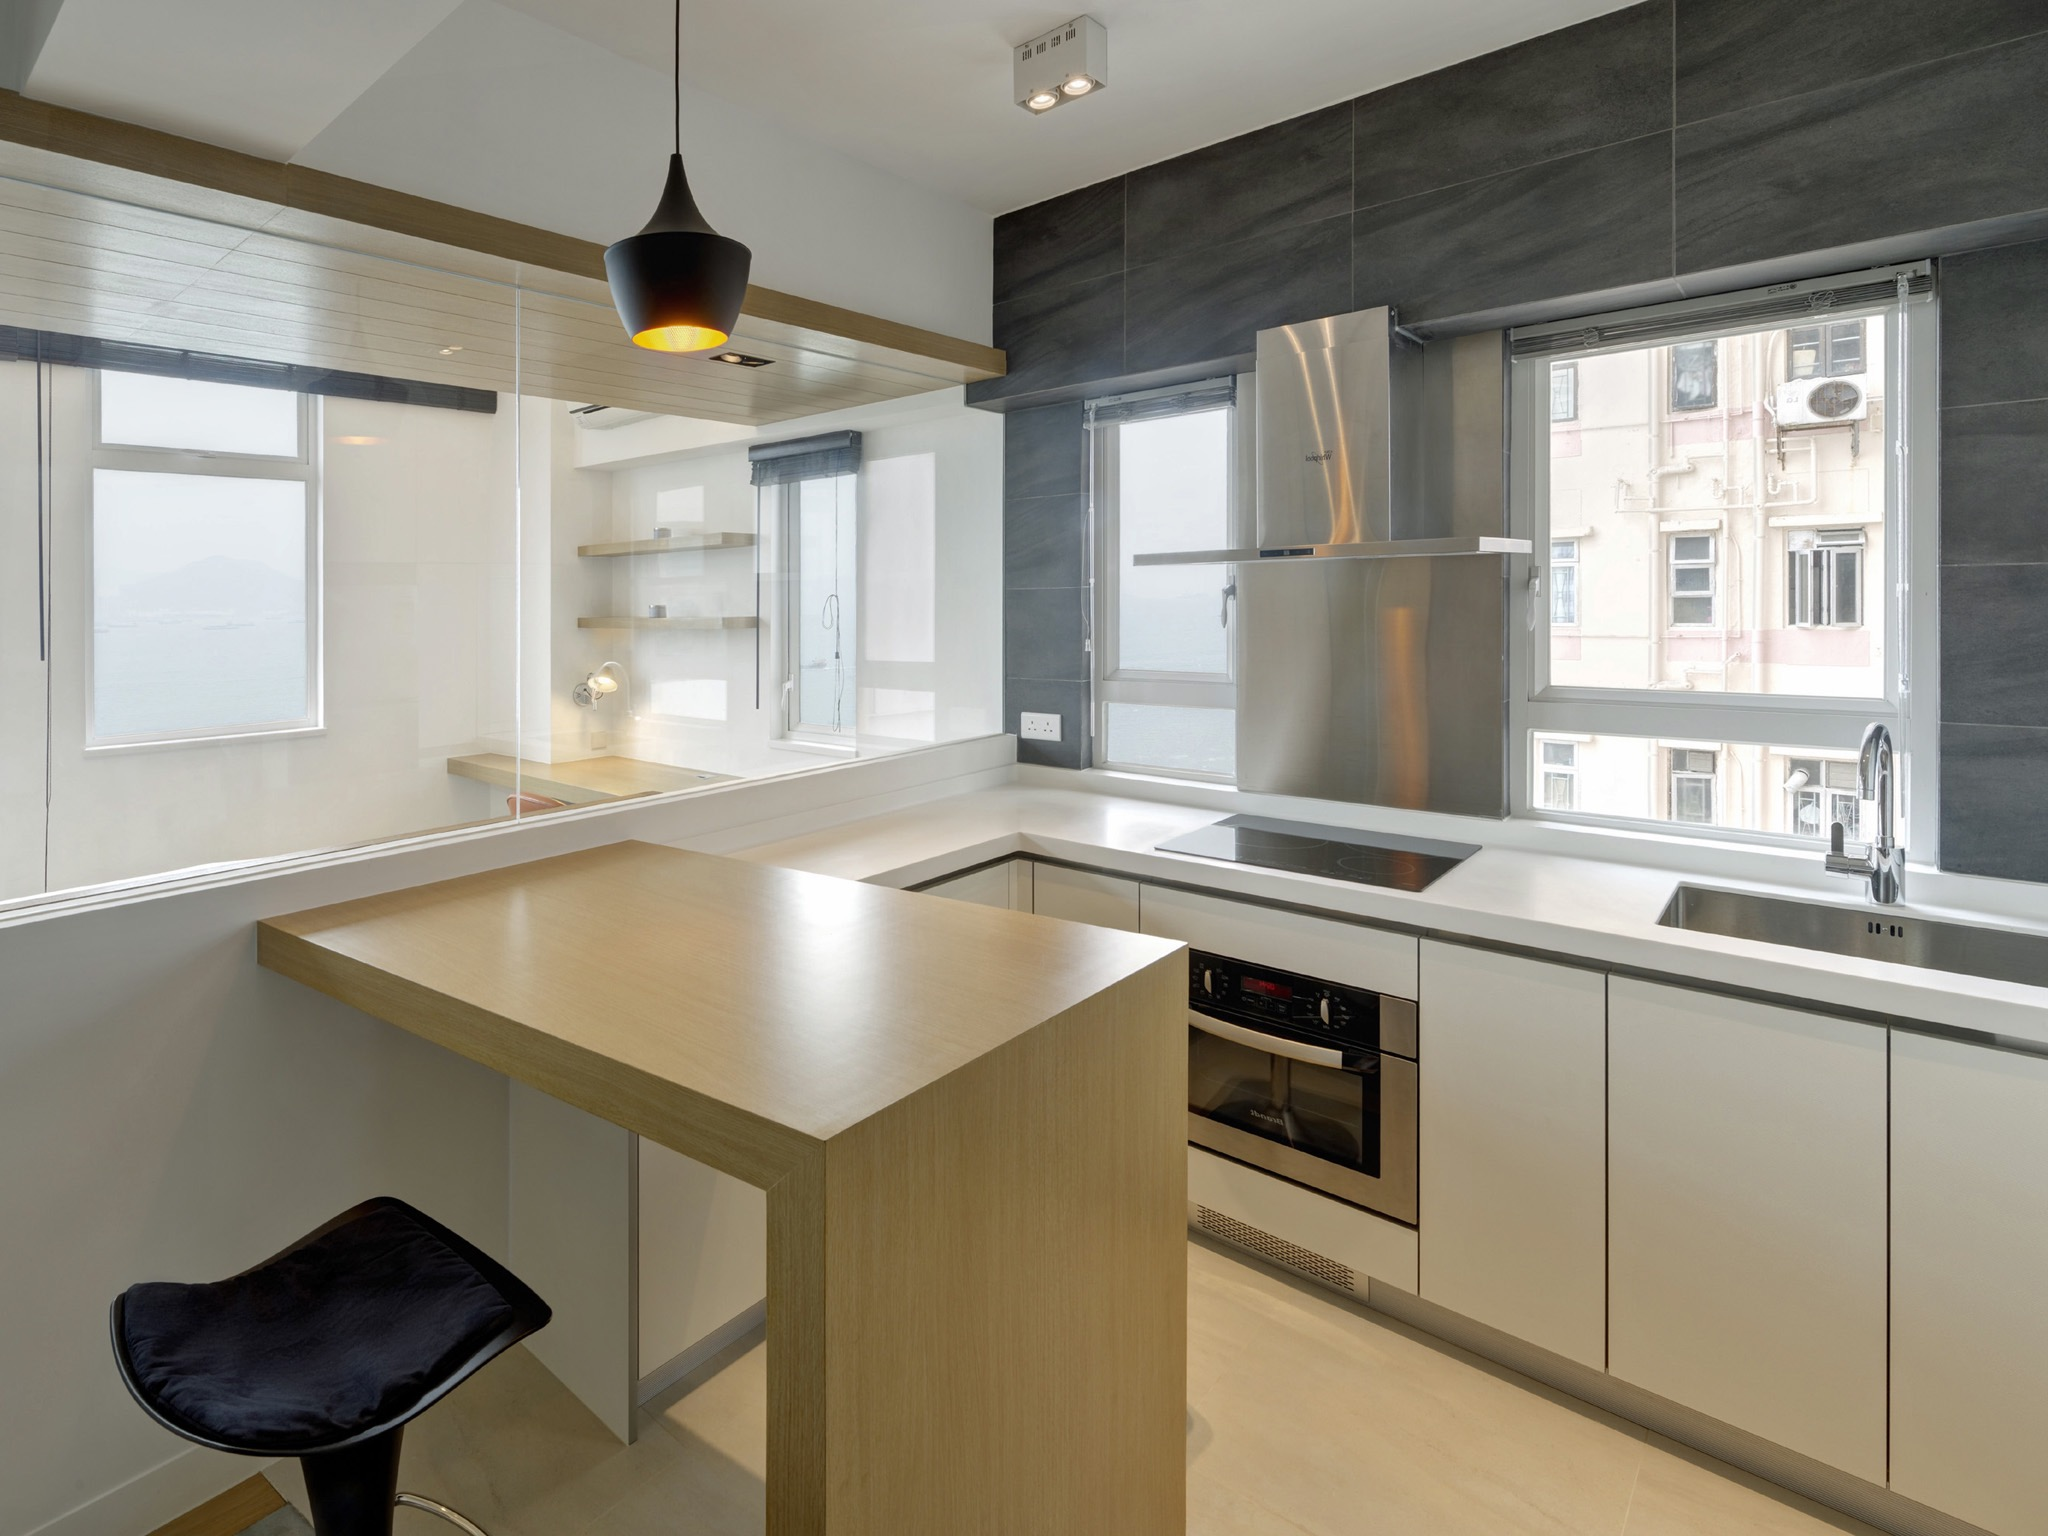 Small Contemporary Apartment Kitchen (Image 8 of 24)